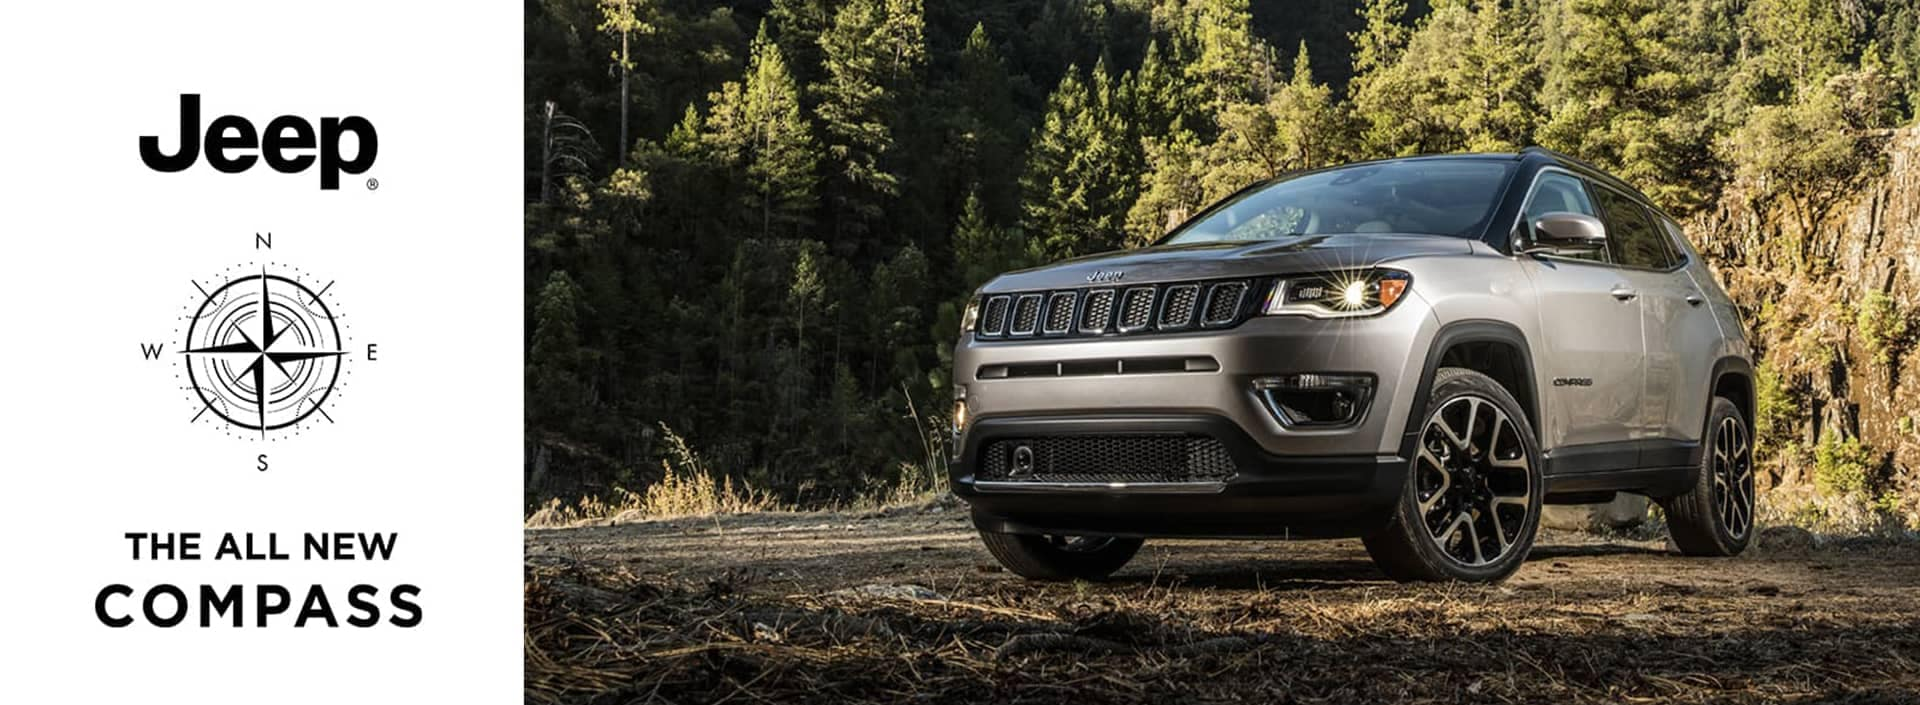 Jeep compass in the forrest